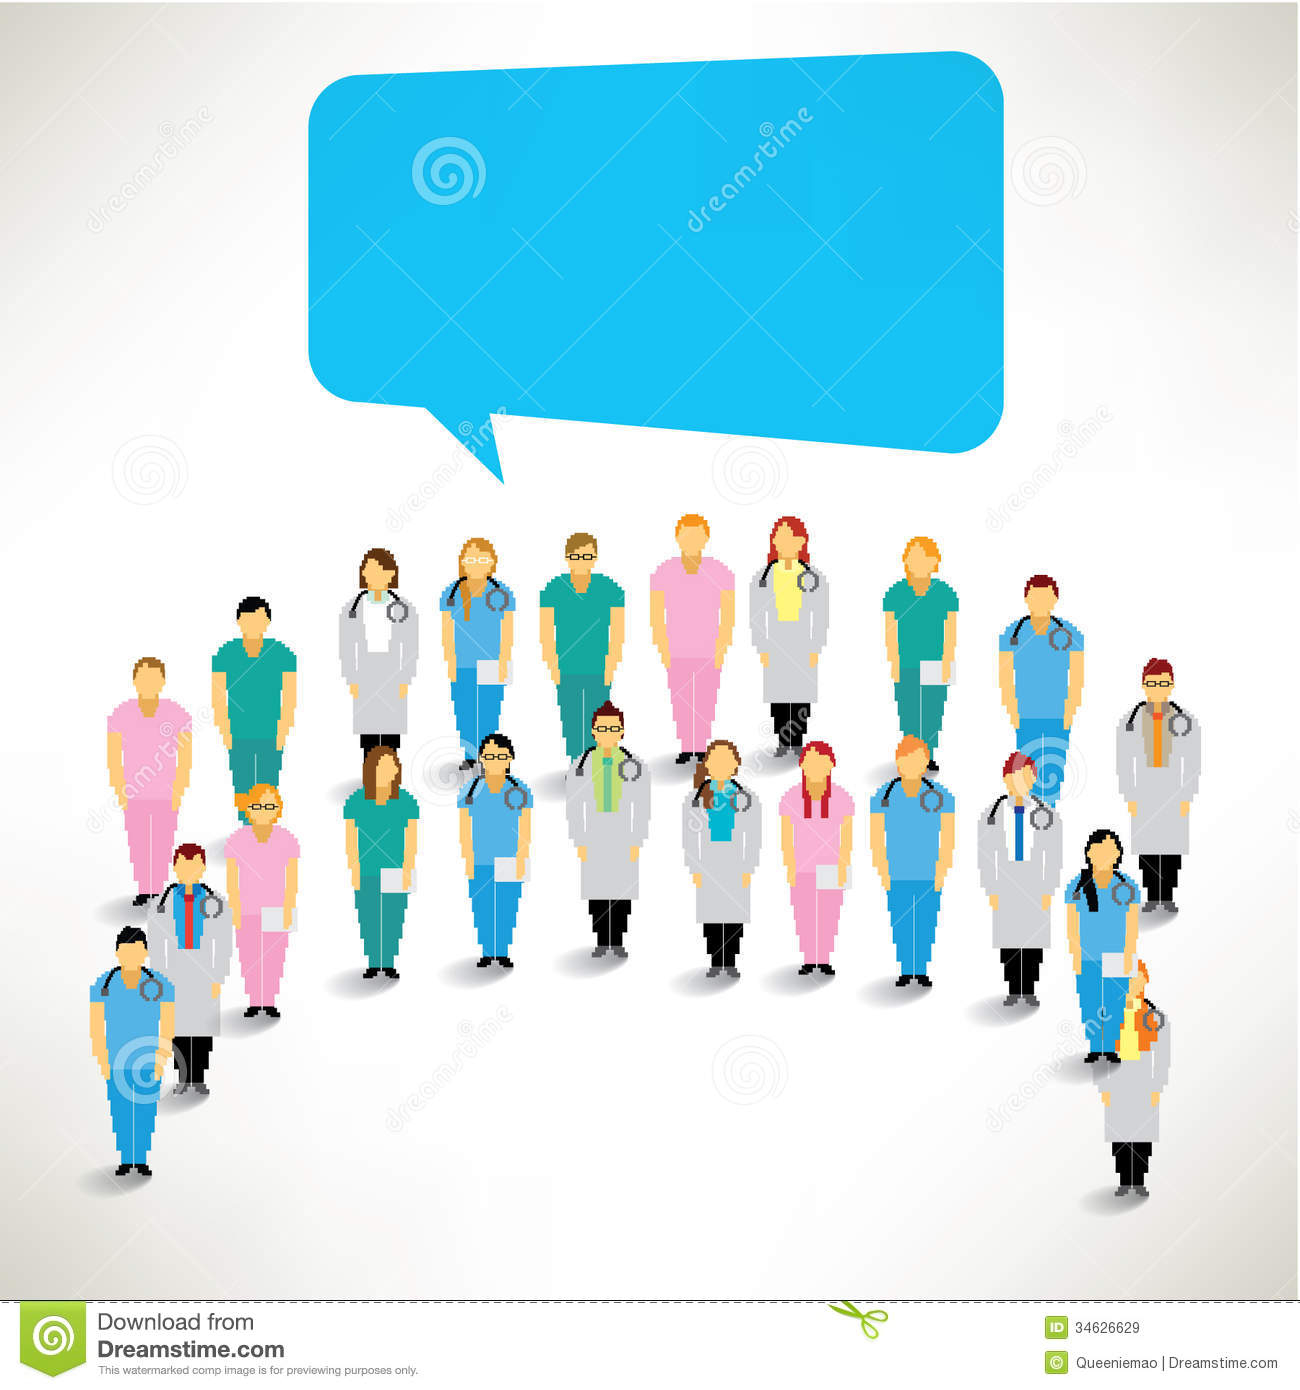 For Staff Meeting Clipart Hospital Displaying 18 Images For Staff